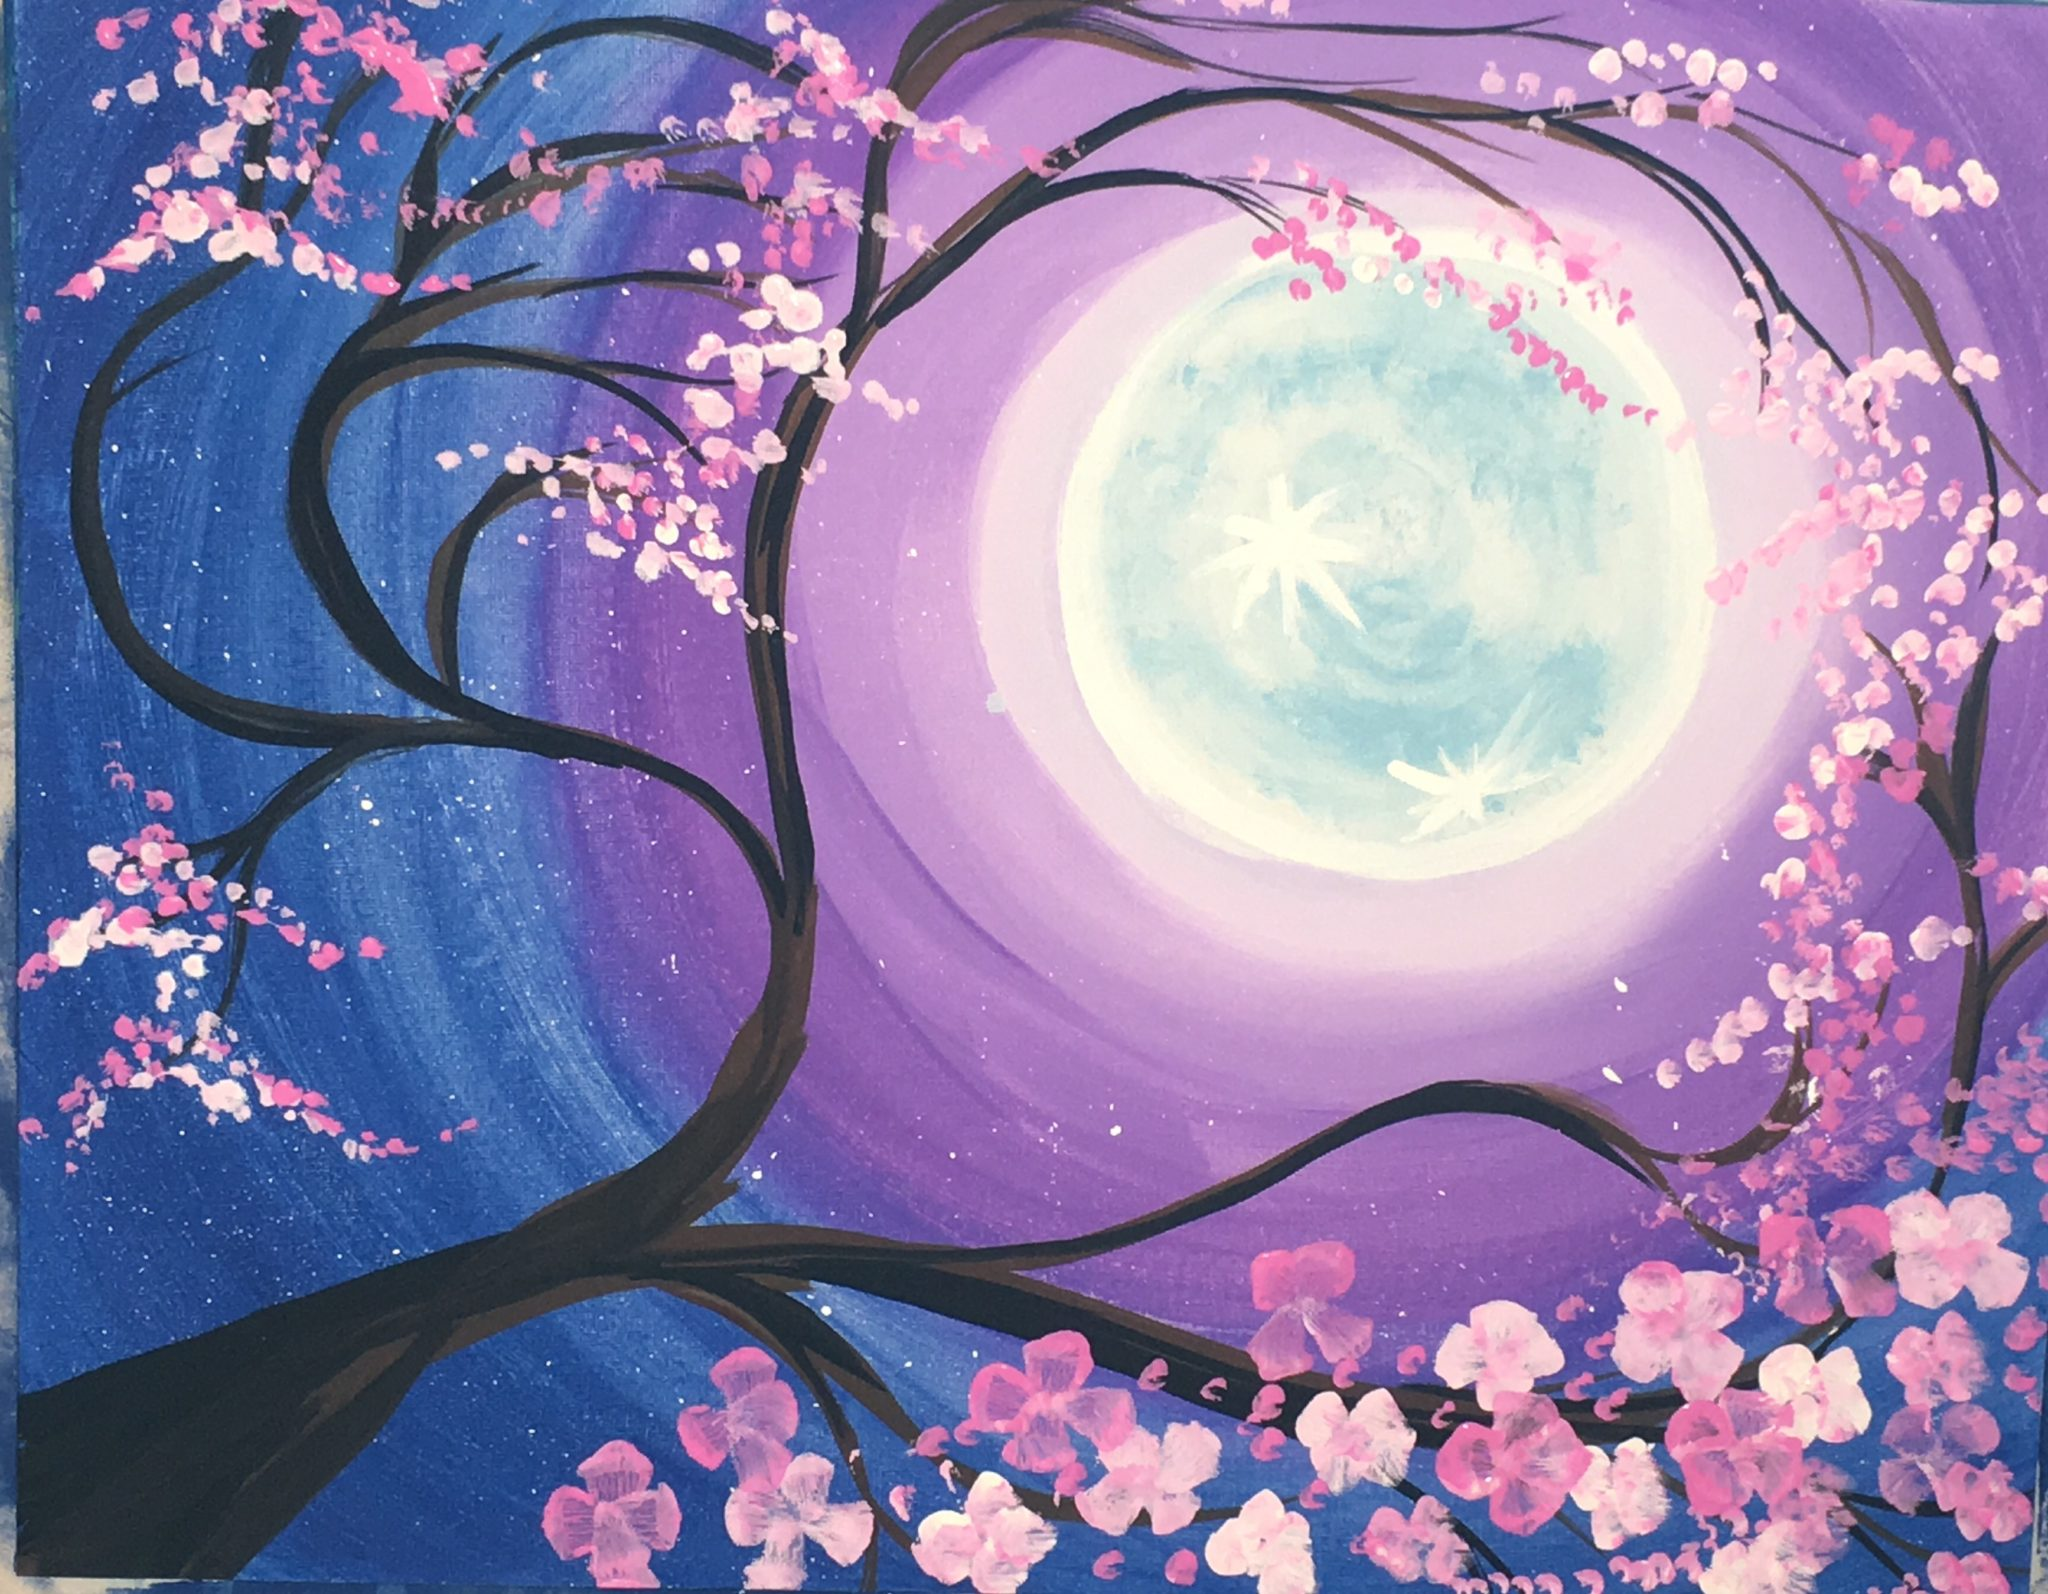 How To Paint A Cherry Blossom Tree With Moon Step By